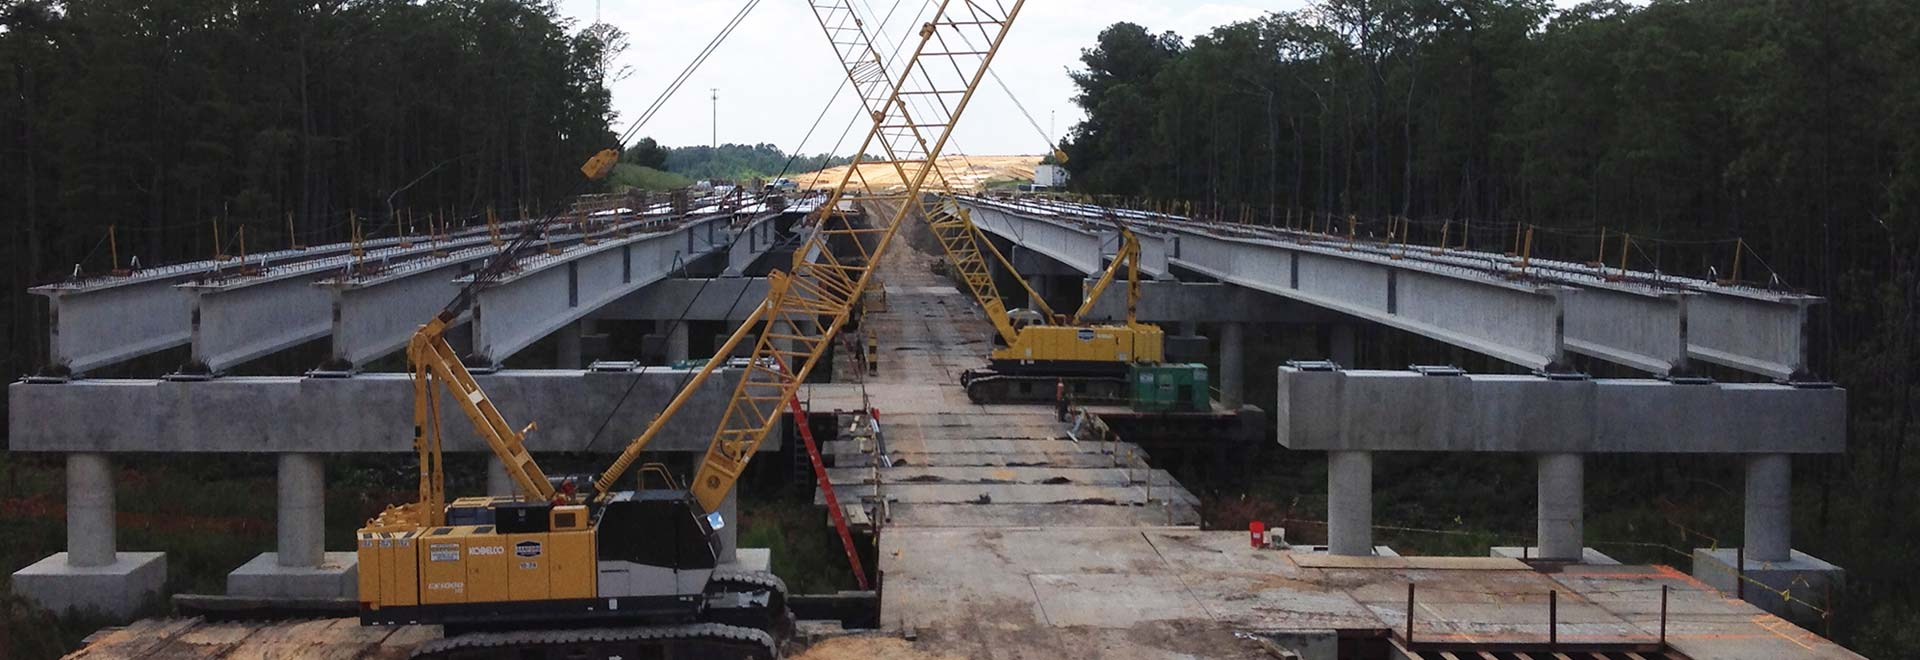 Crane Construction on Bridge